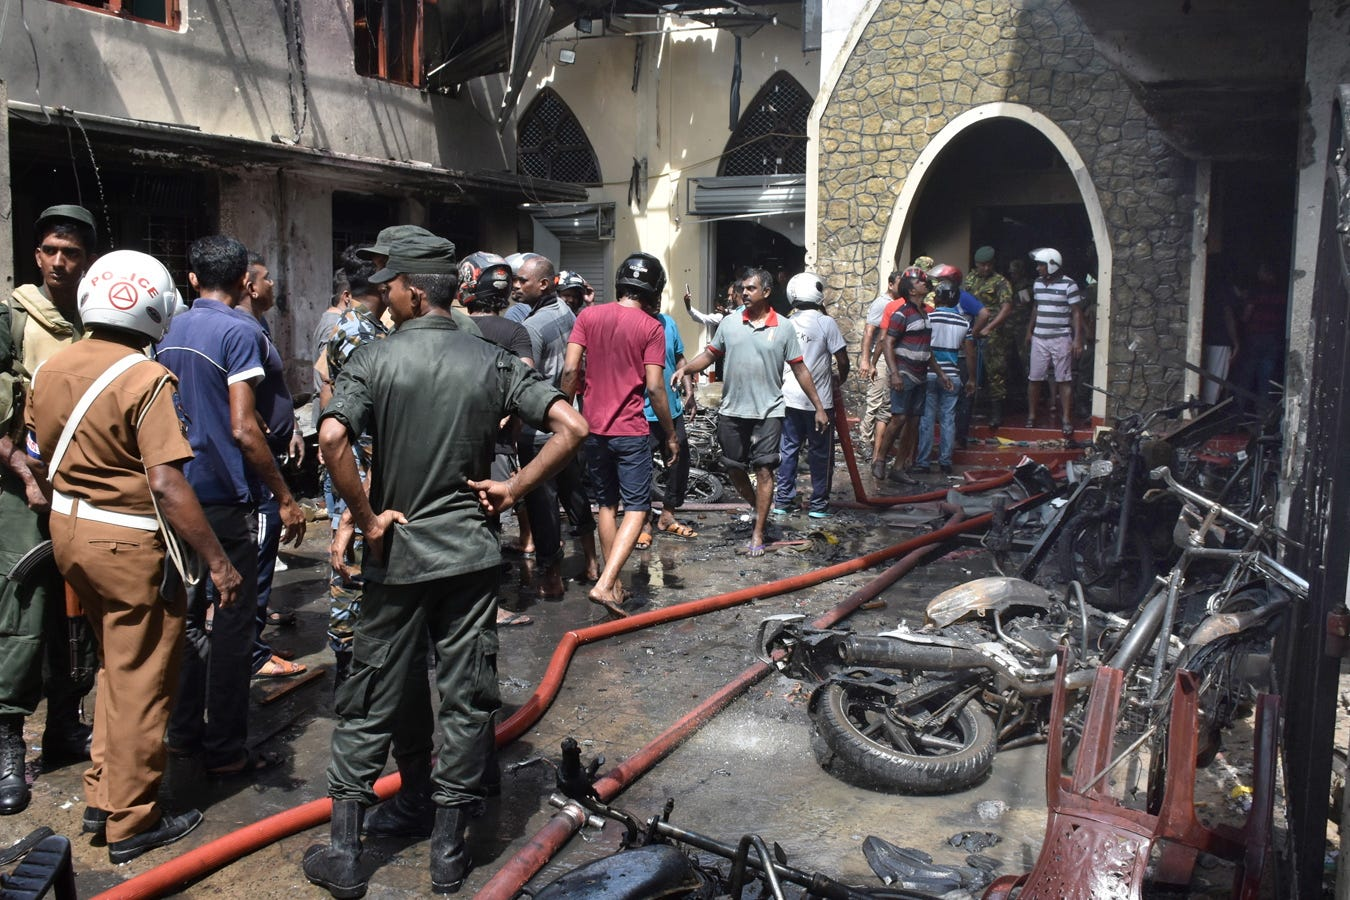 Nearly 200 killed as explosions rock churches and hotels in Sri Lanka on Easter Sunday